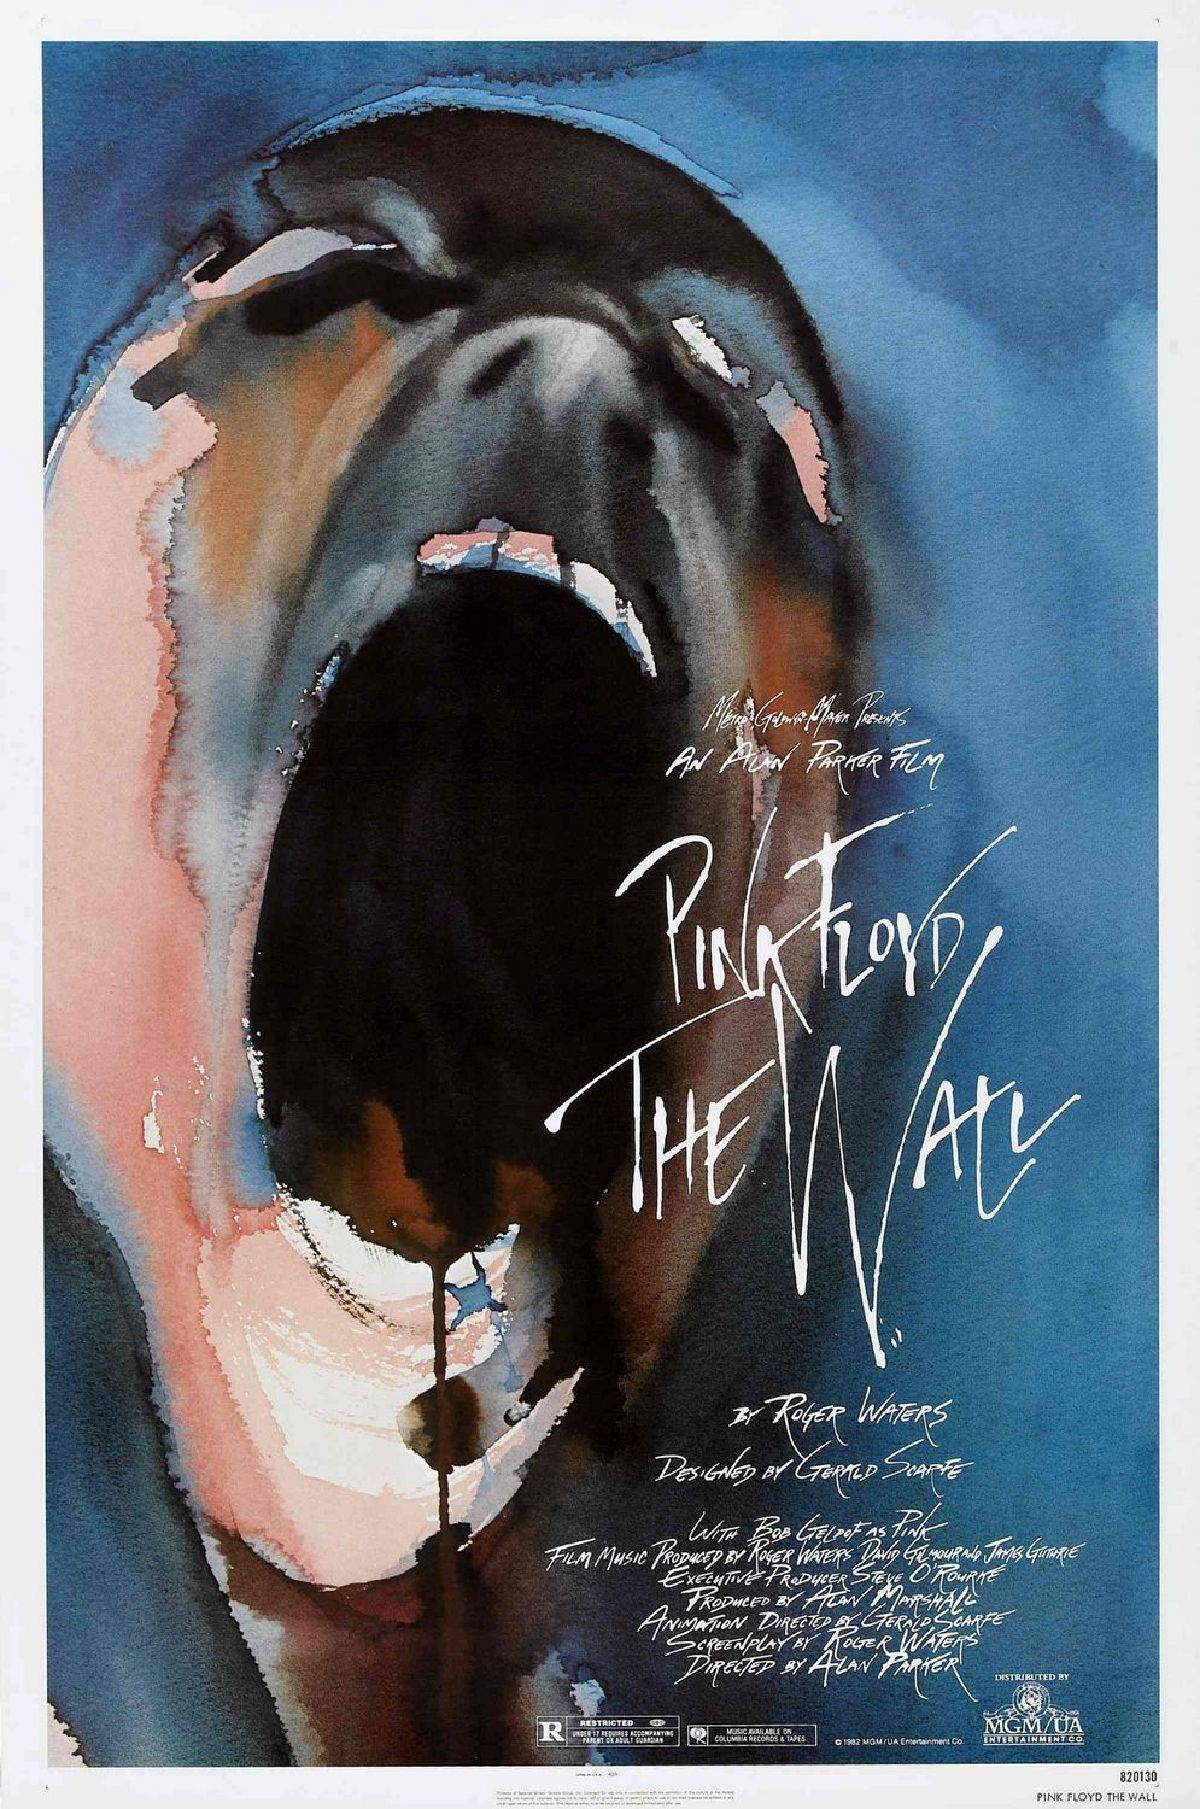 'Pink Floyd: The Wall' movie poster